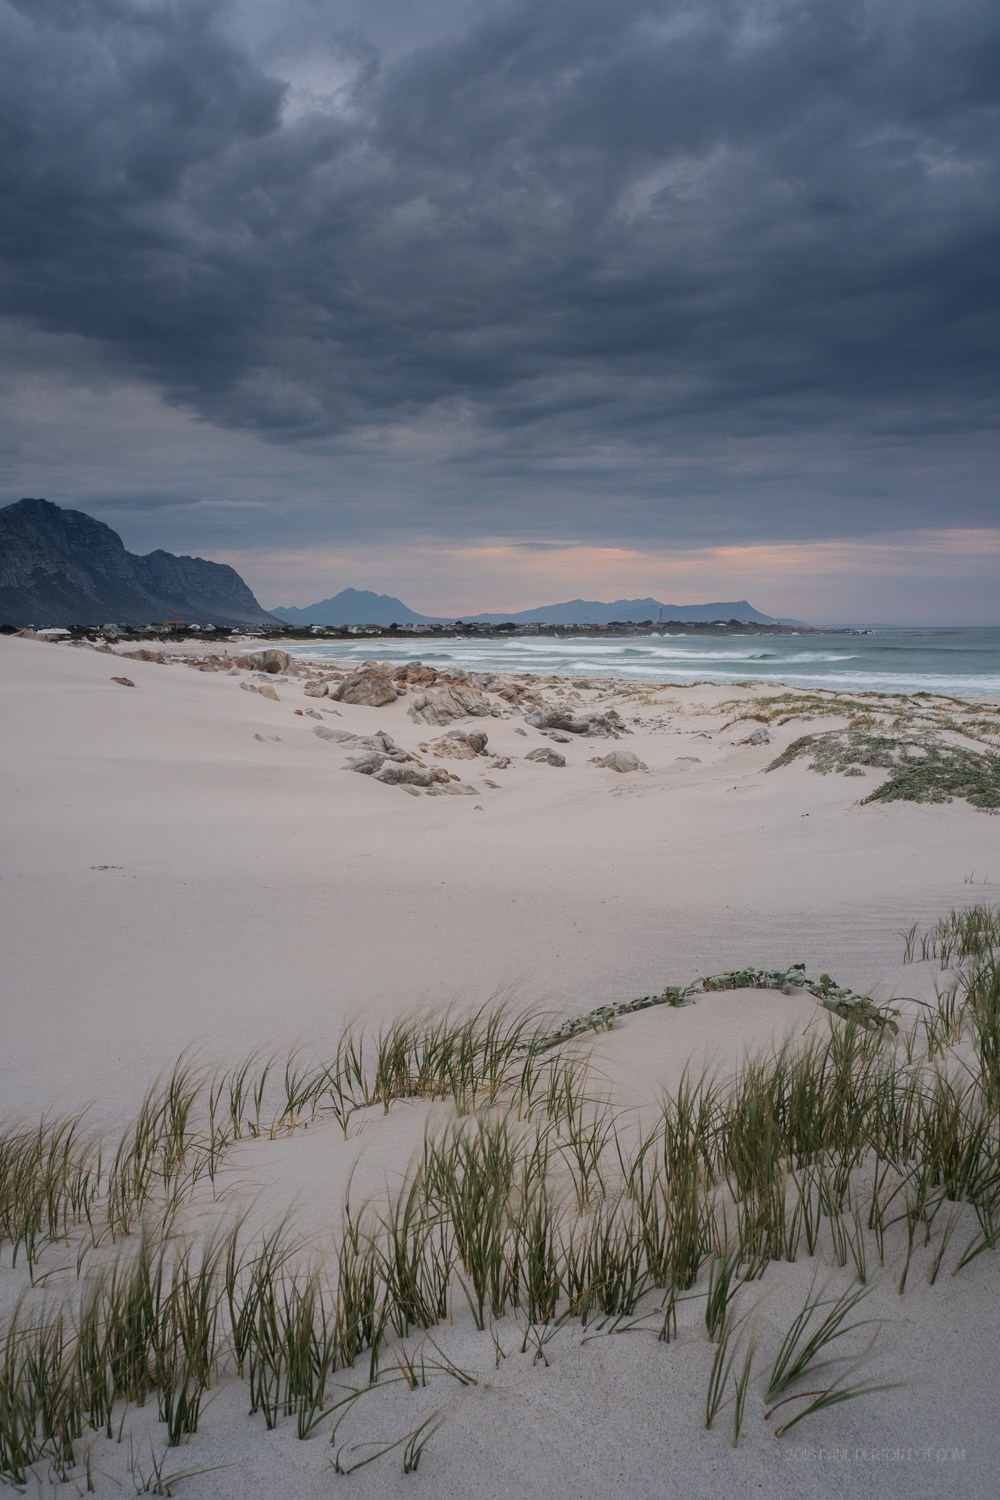 Betty's Bay - X-H1 with Zeiss 25mm Biogon @ f11